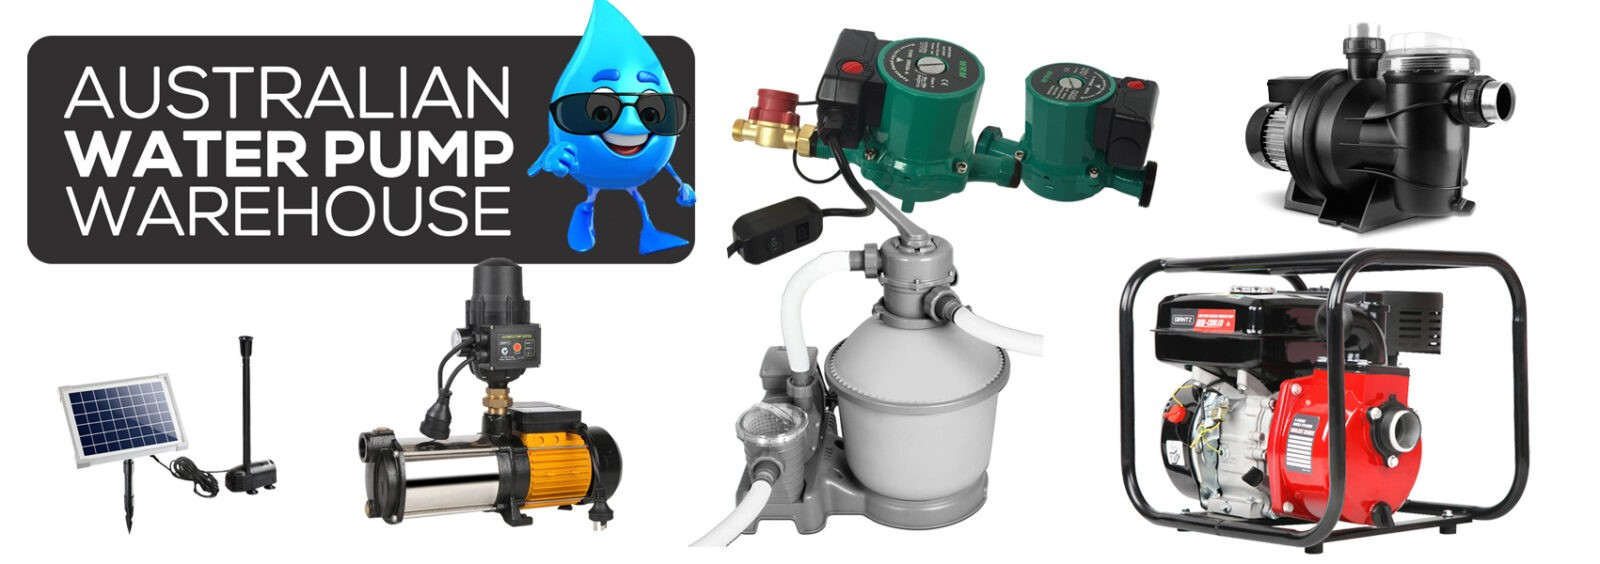 Aust Water Pump Warehouse Range